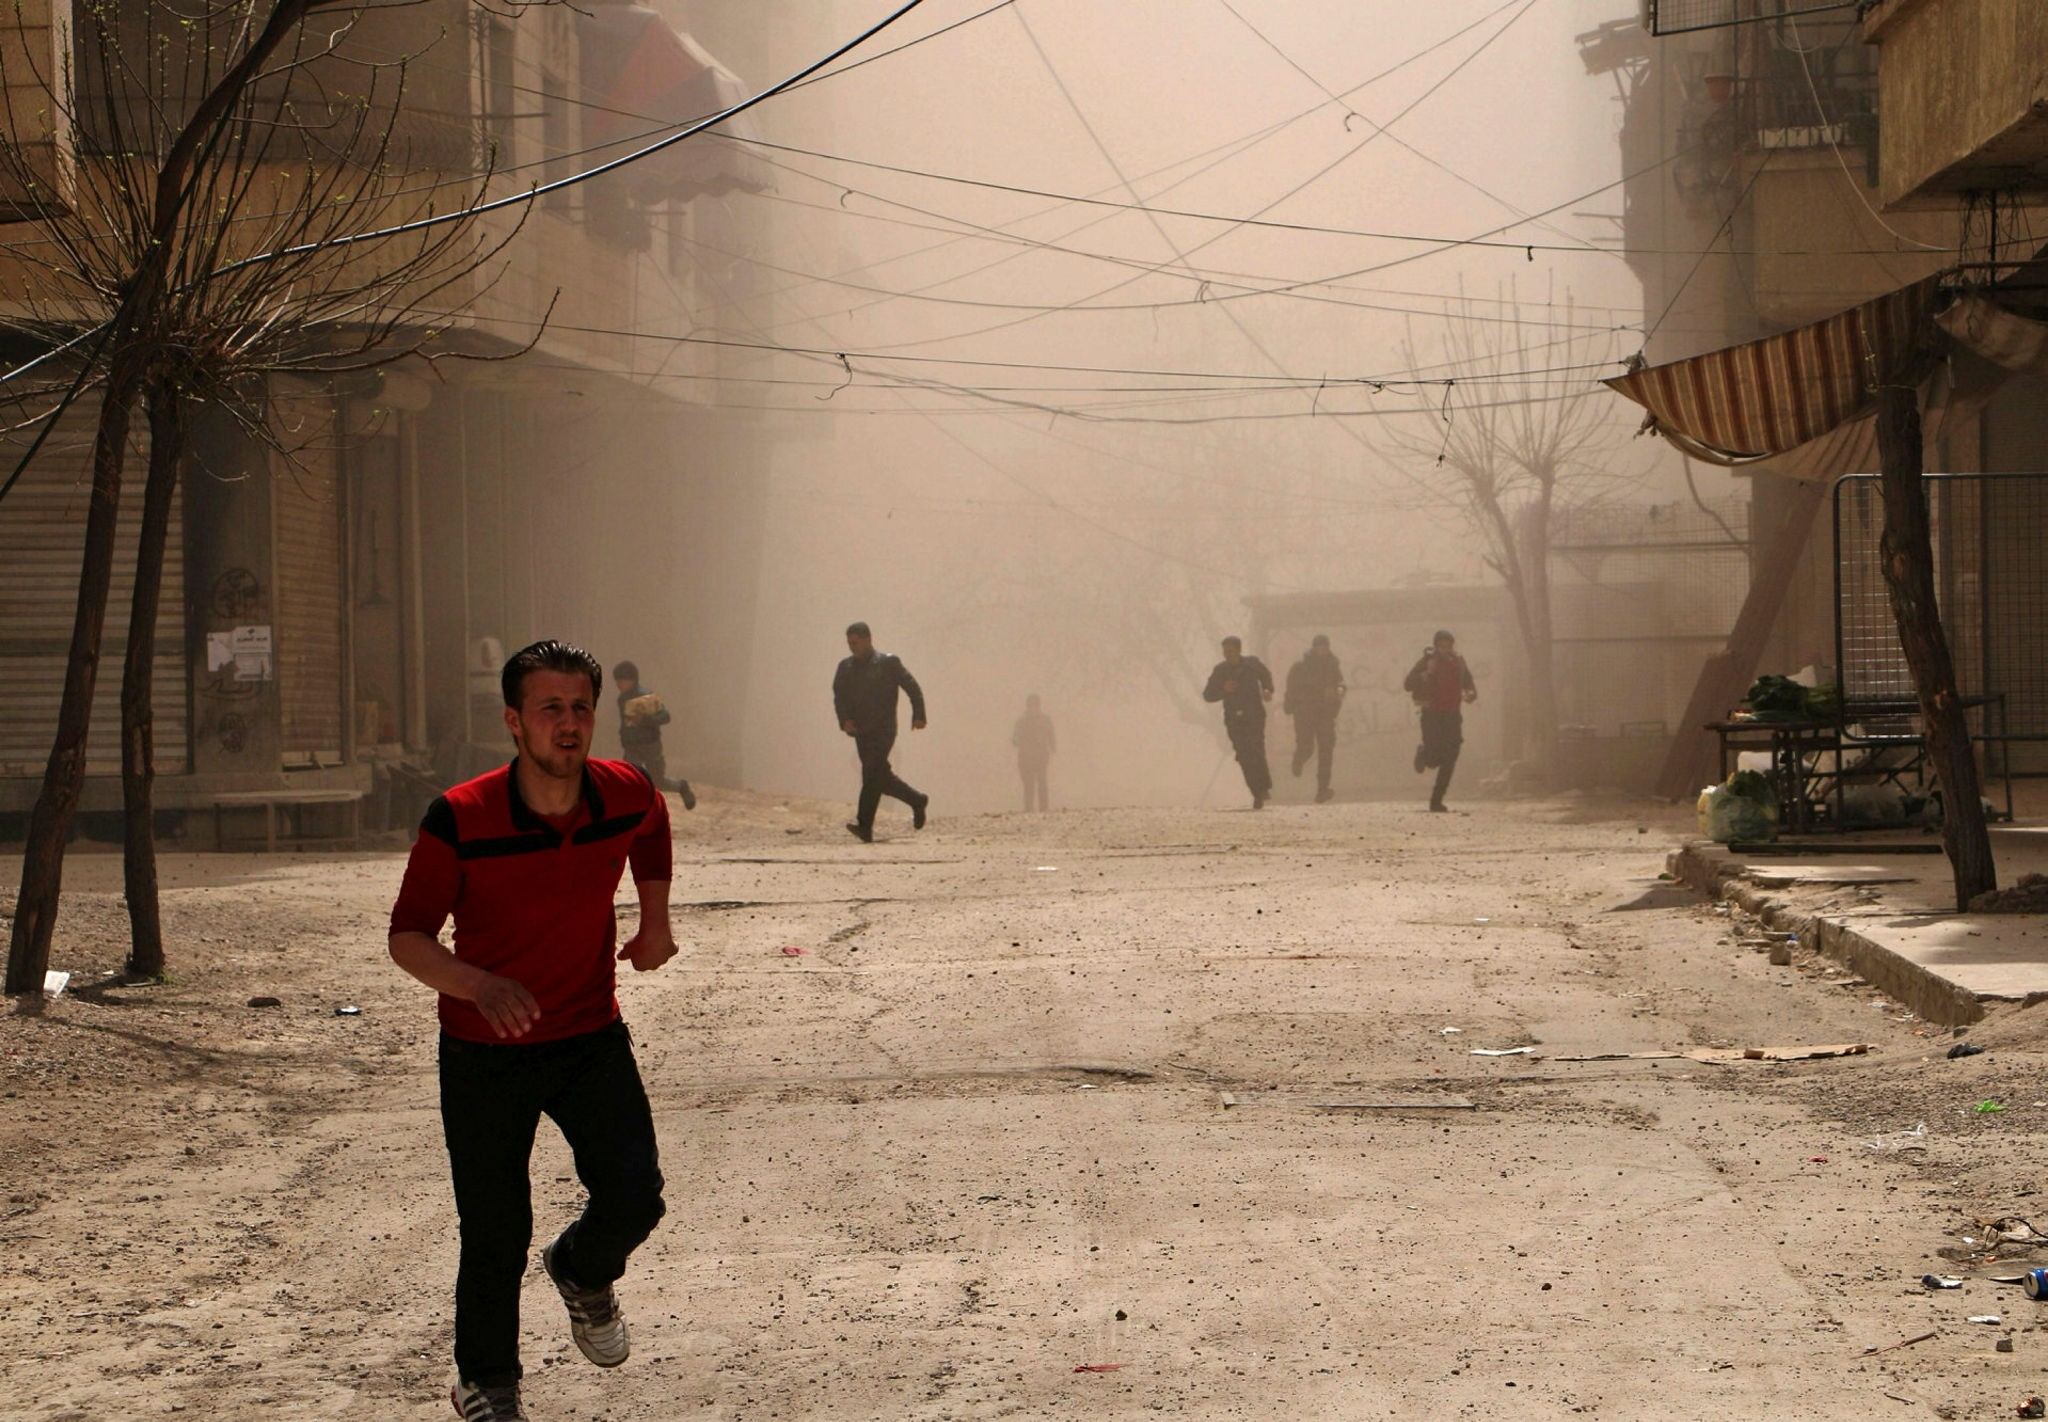 Syrians run for cover as smoke billows following an airstrike on Ain Tarma, in the eastern Ghouta area (AFP Photo)